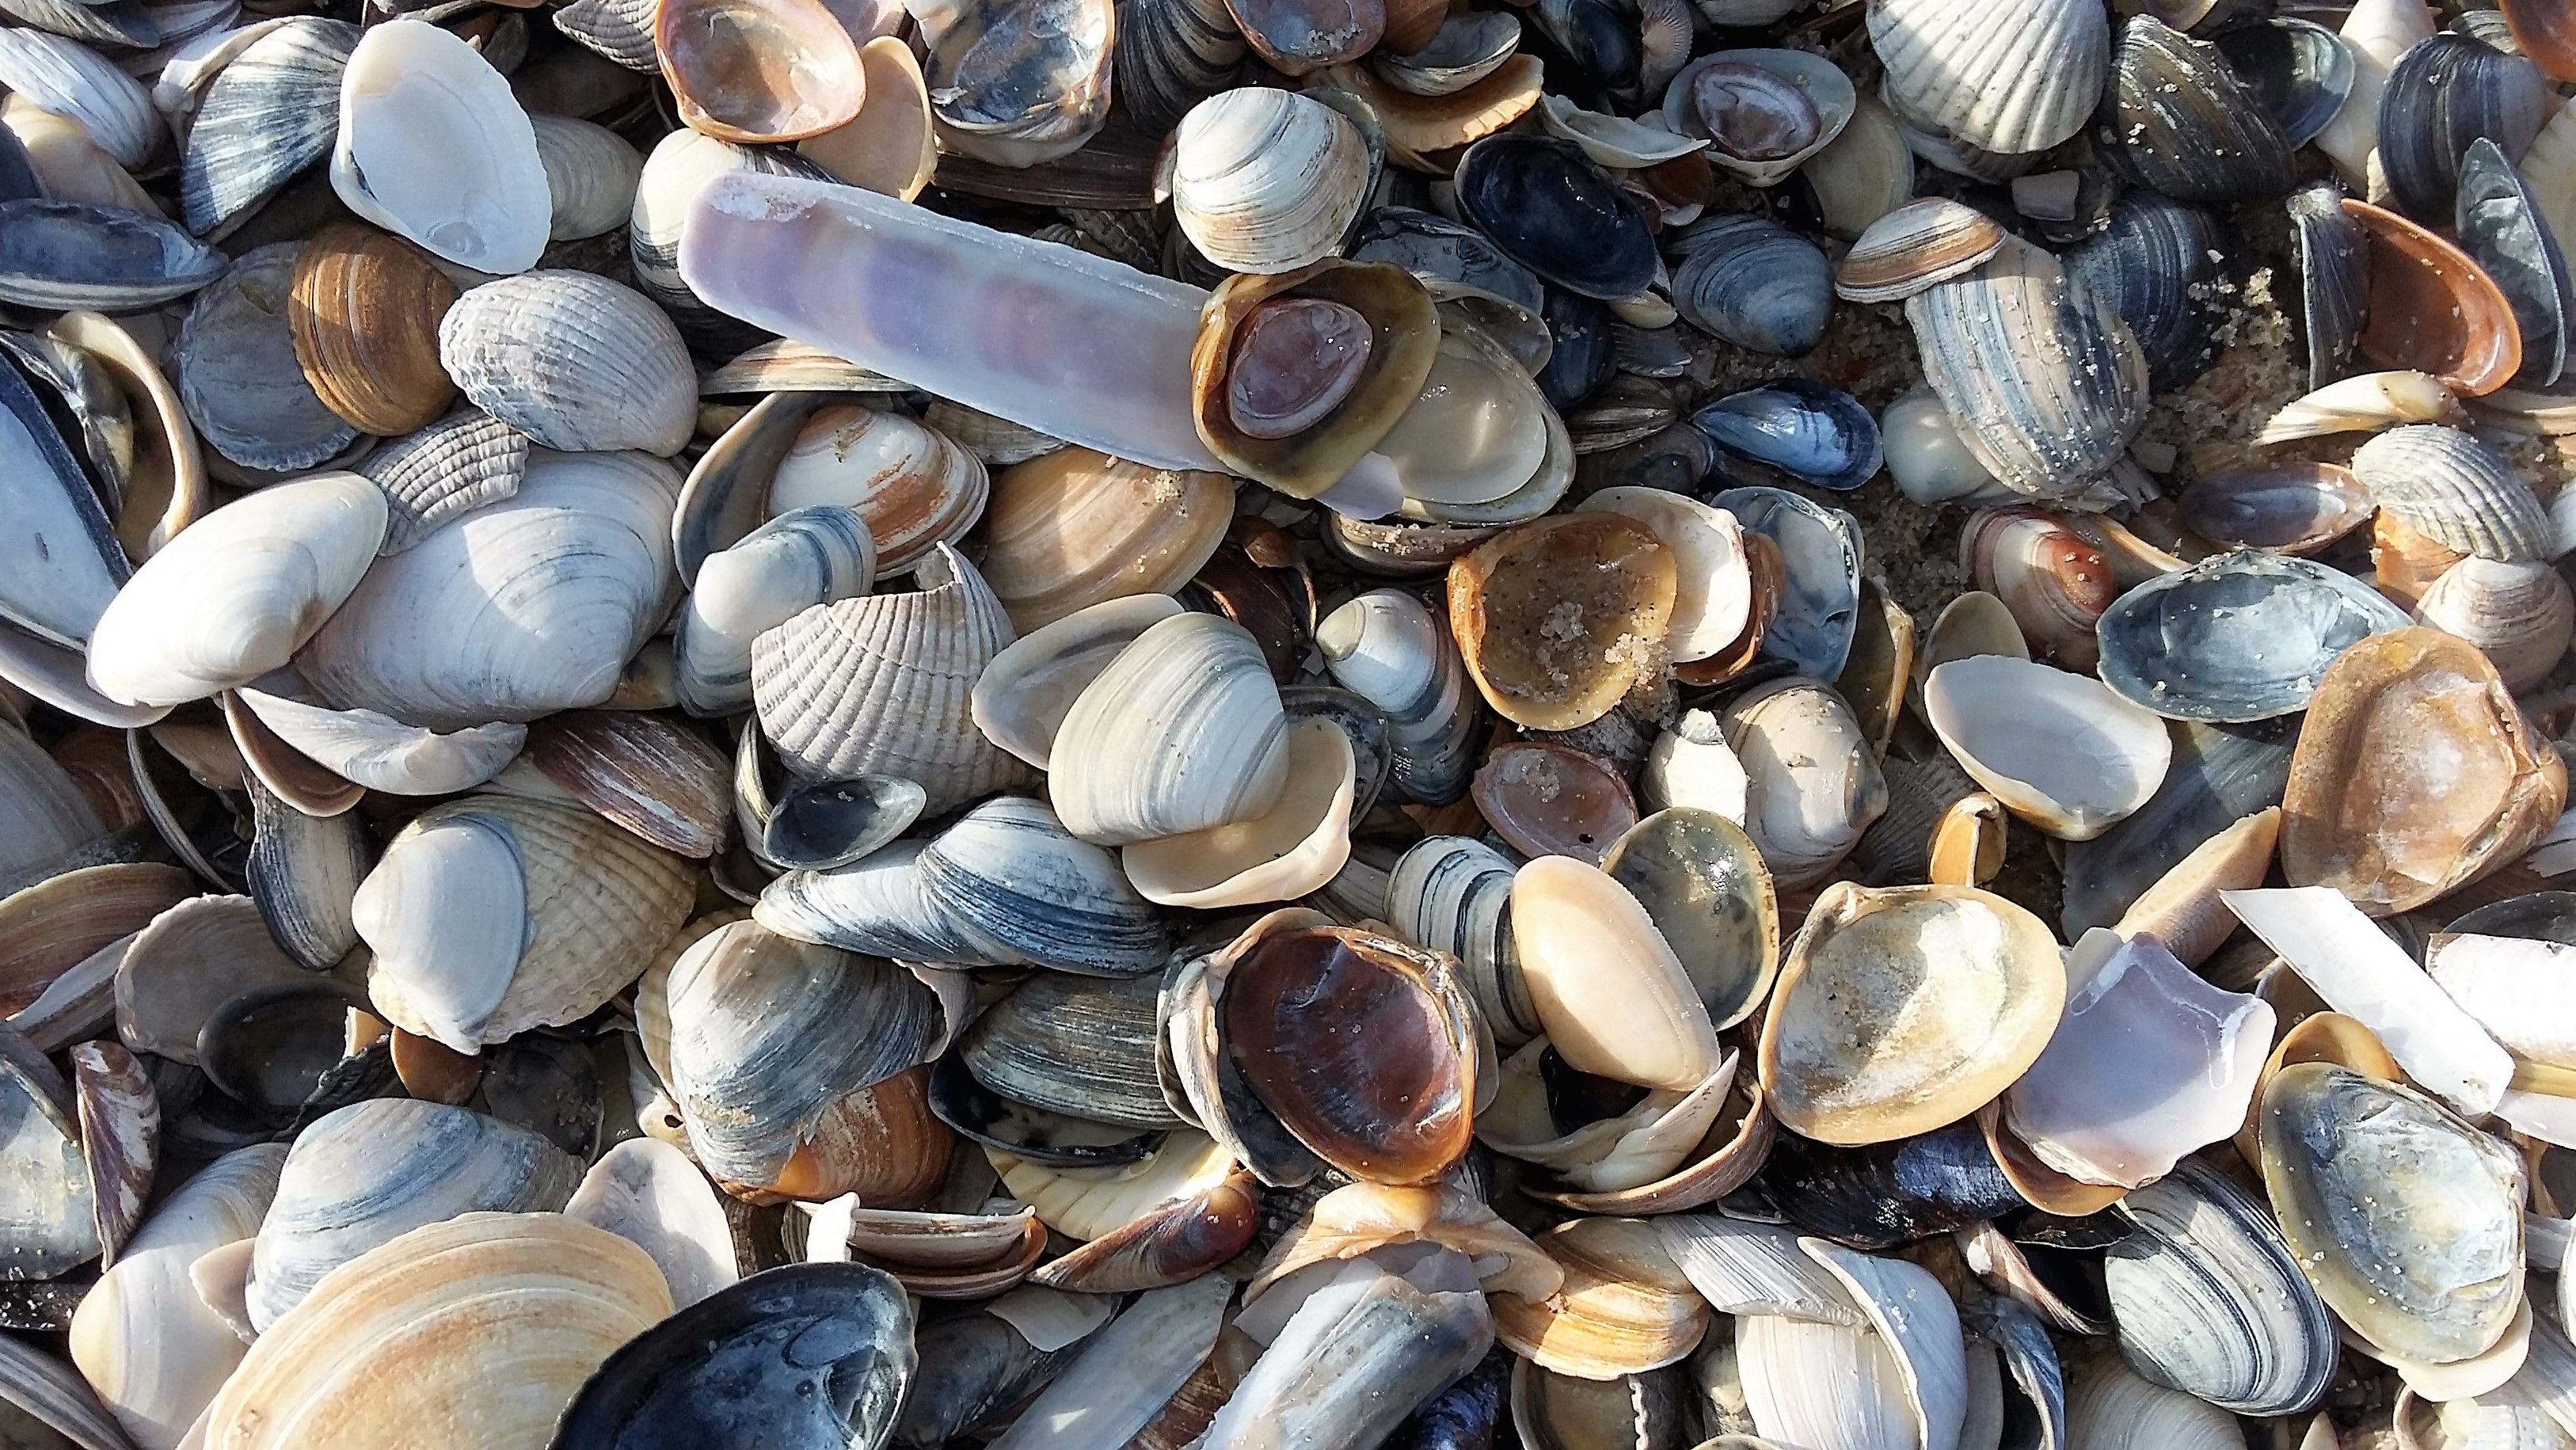 Mussels, Animal, Beach, Mussel, Nature, HQ Photo